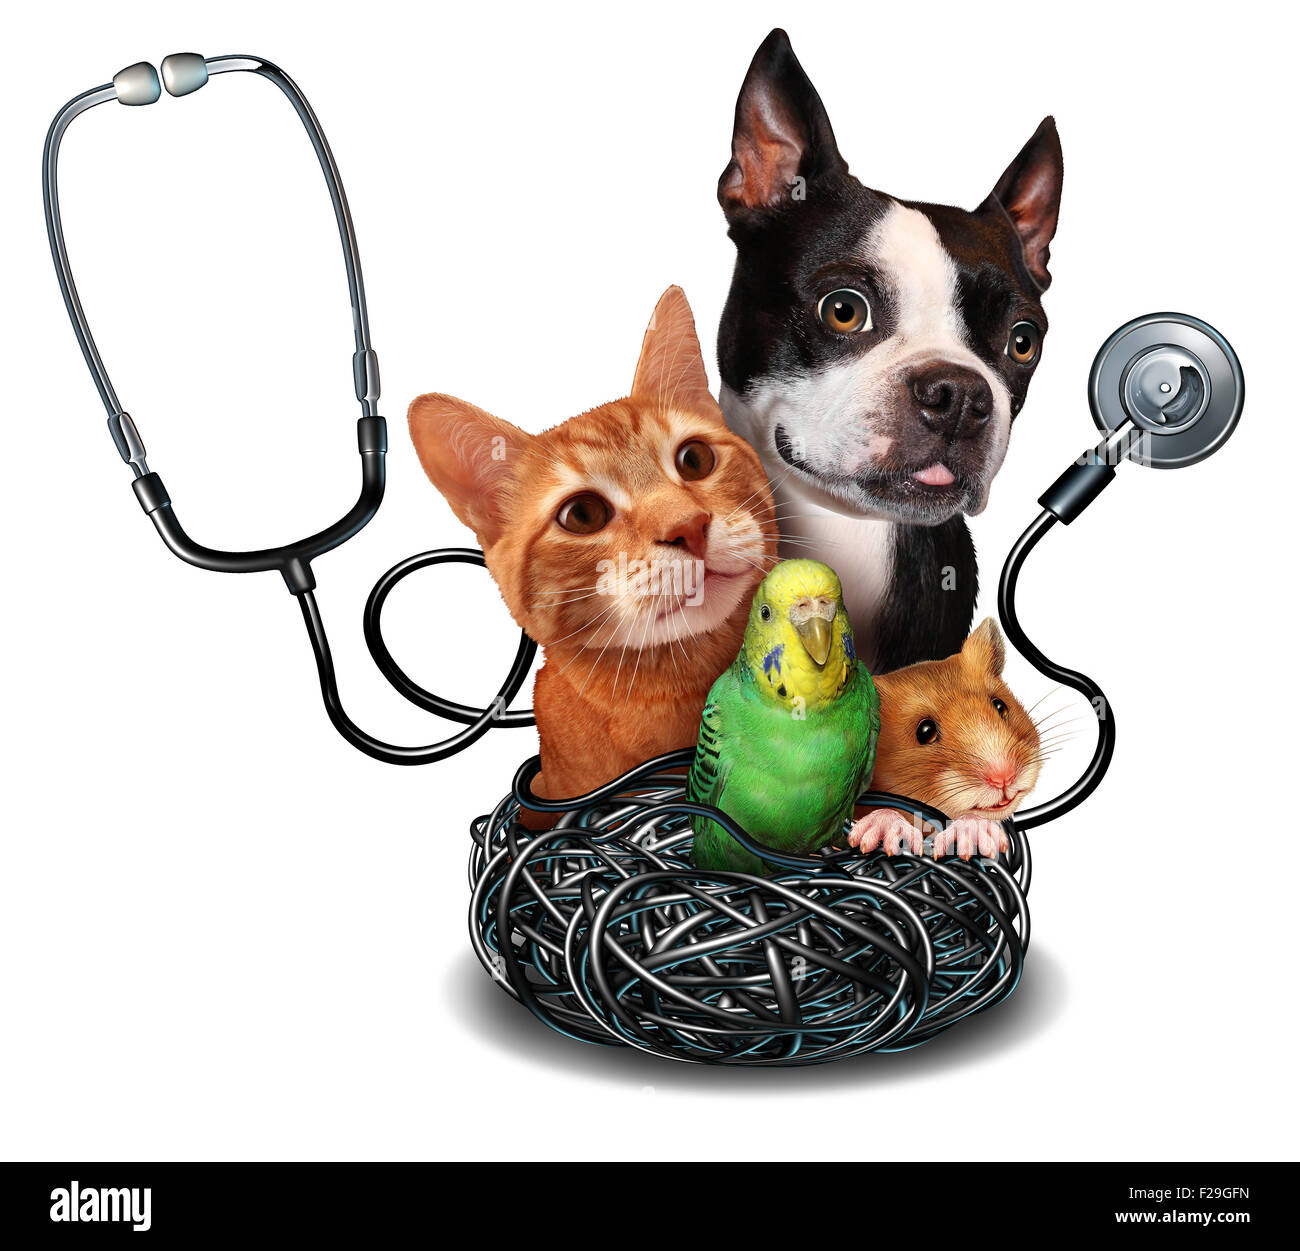 Veterinary care and pet medicine concept as a group of domesticated animals as a cat dog hamster and bird as a symbol - Stock Image